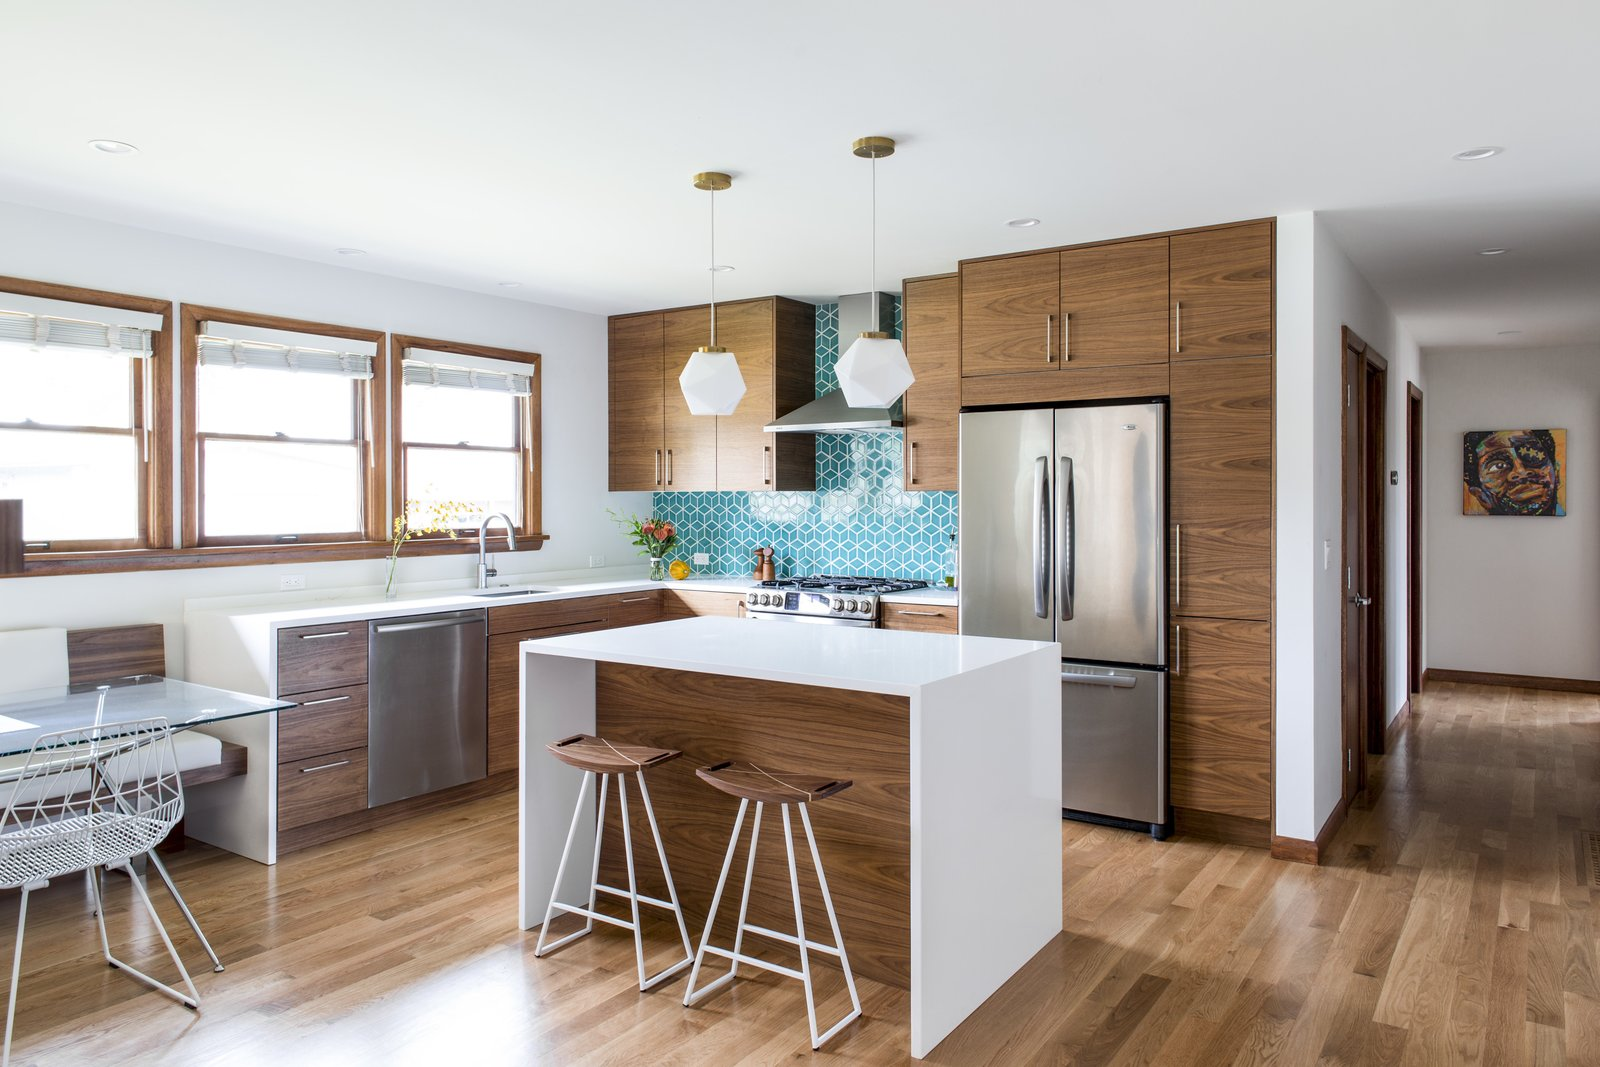 Kitchen, Refrigerator, Undermount, Recessed, Pendant, Ceramic Tile, Dishwasher, Medium Hardwood, Wood, Range, and Range Hood  Best Kitchen Range Dishwasher Pendant Refrigerator Ceramic Tile Photos from What's the Most Overlooked Feature When Planning a Kitchen Renovation?